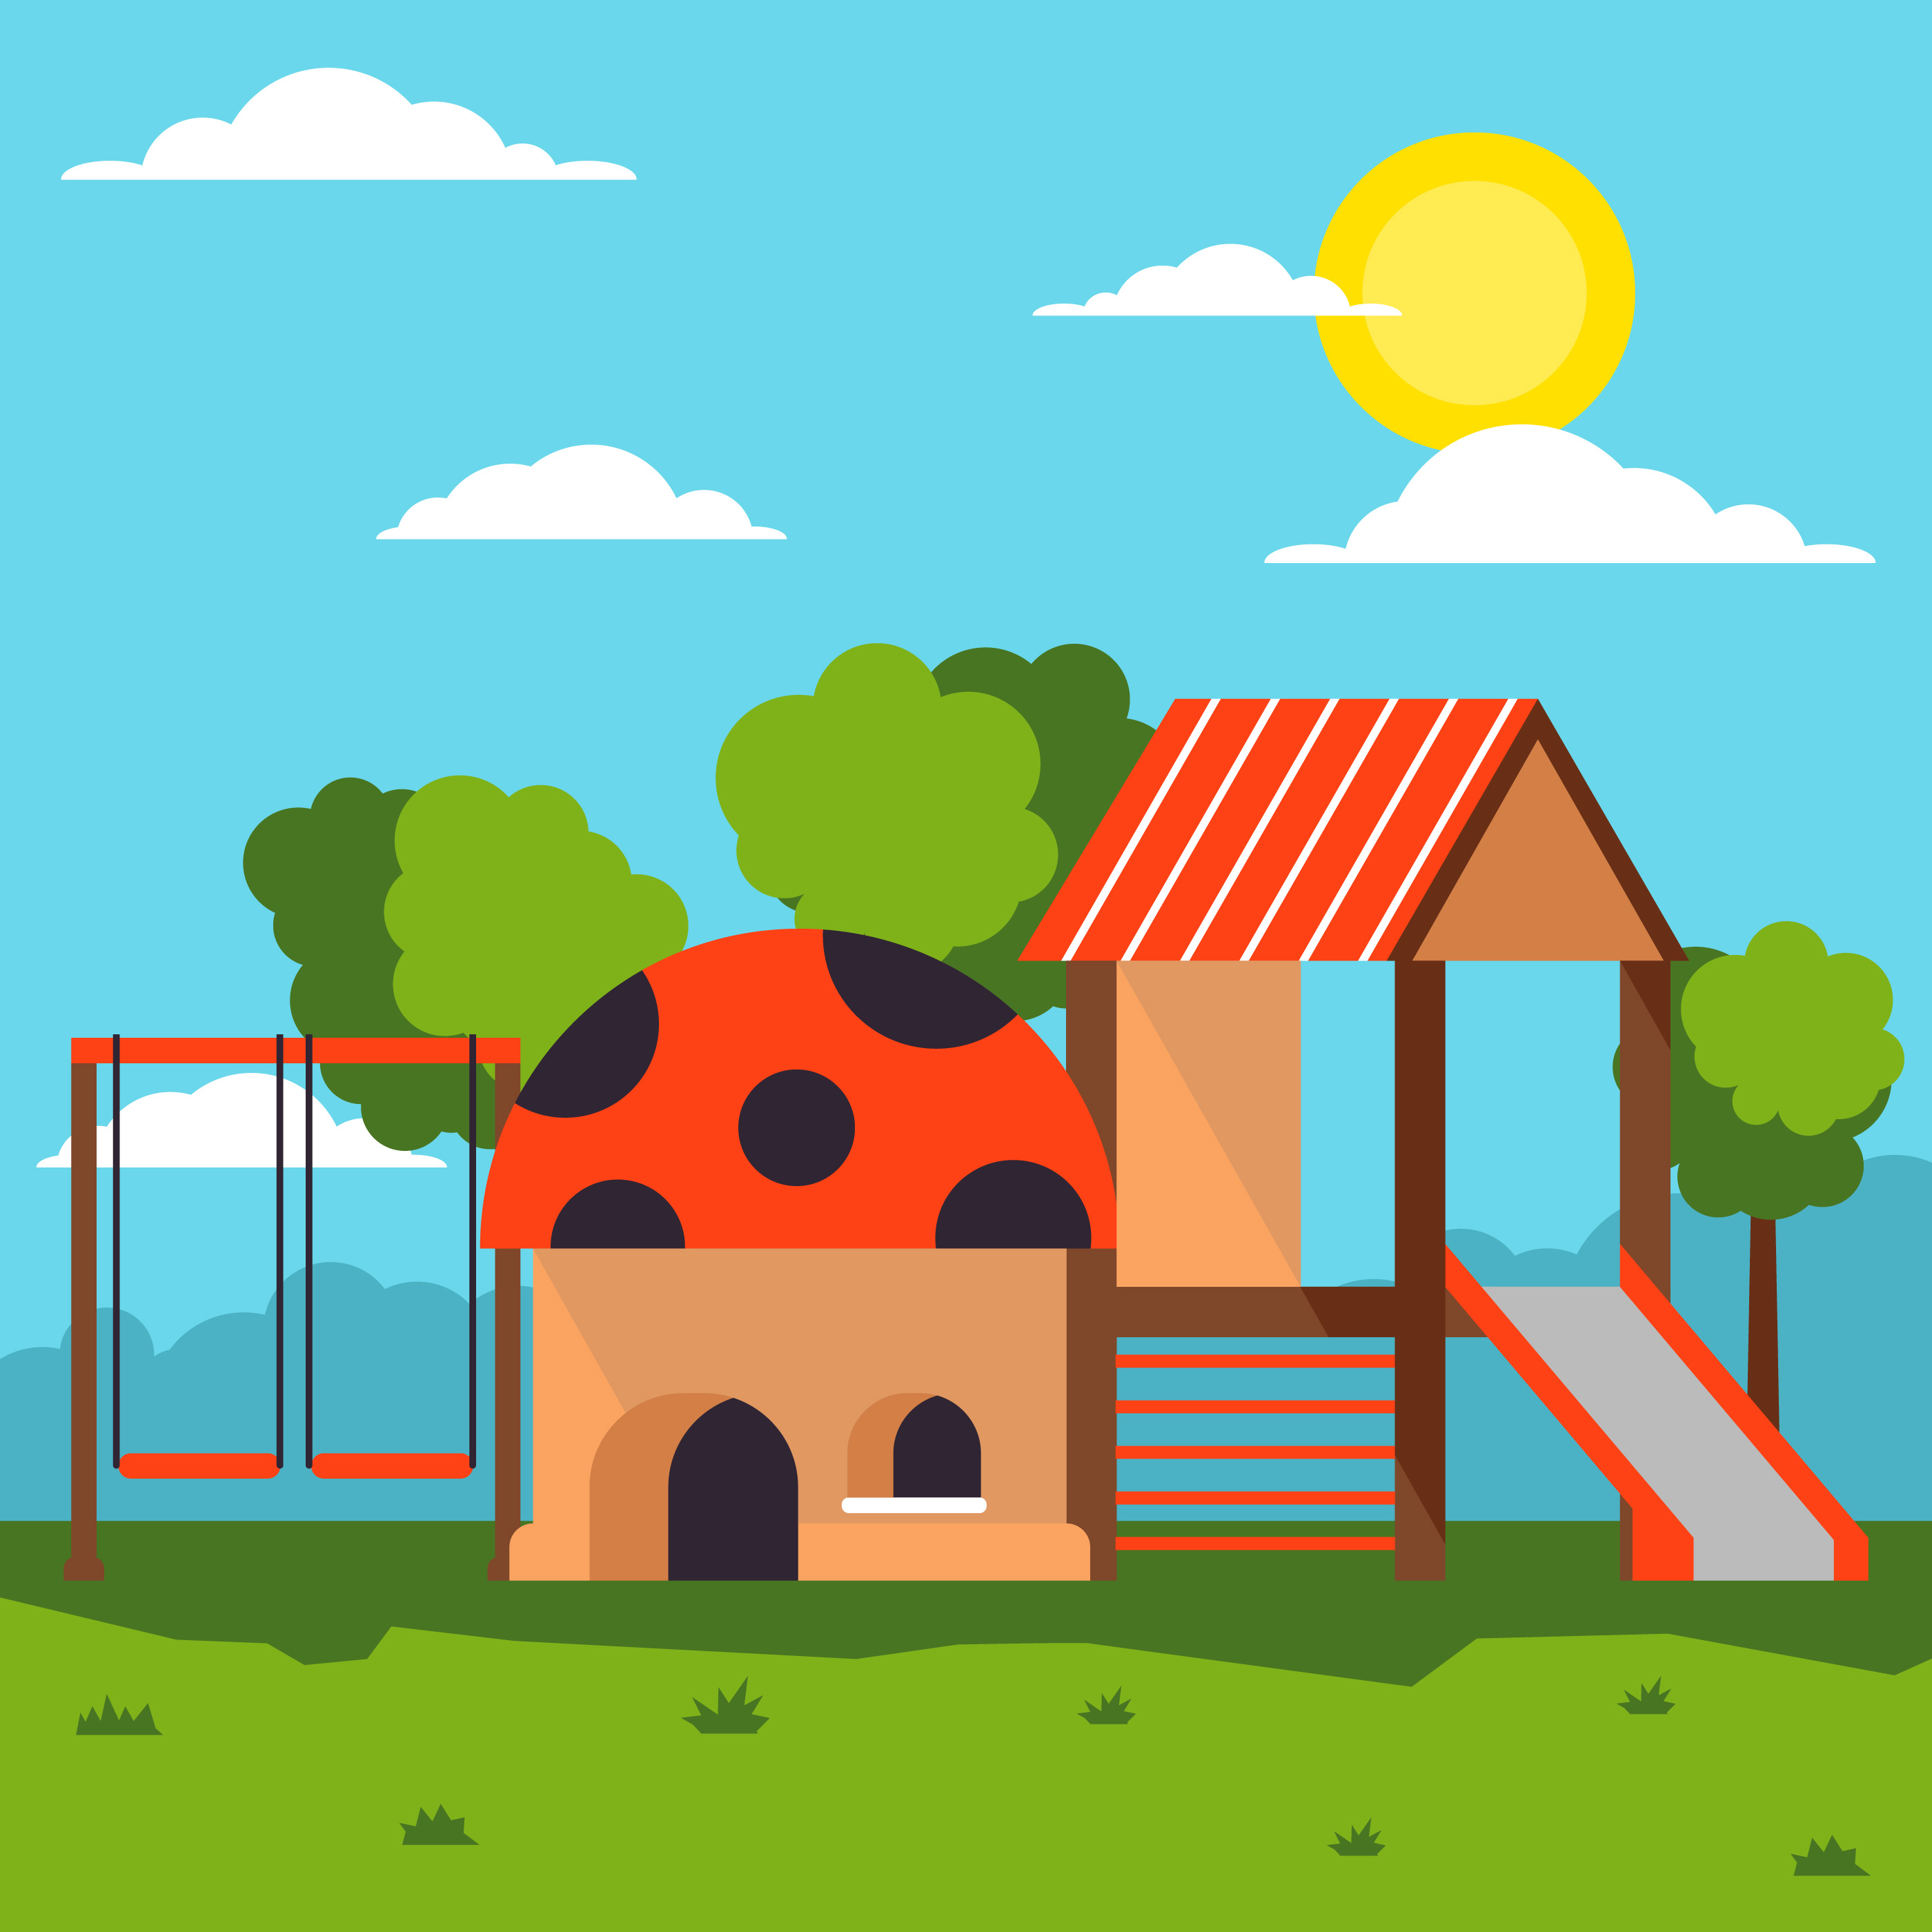 2800x2800 Playhouse In The Middle Of Playground Illustrator